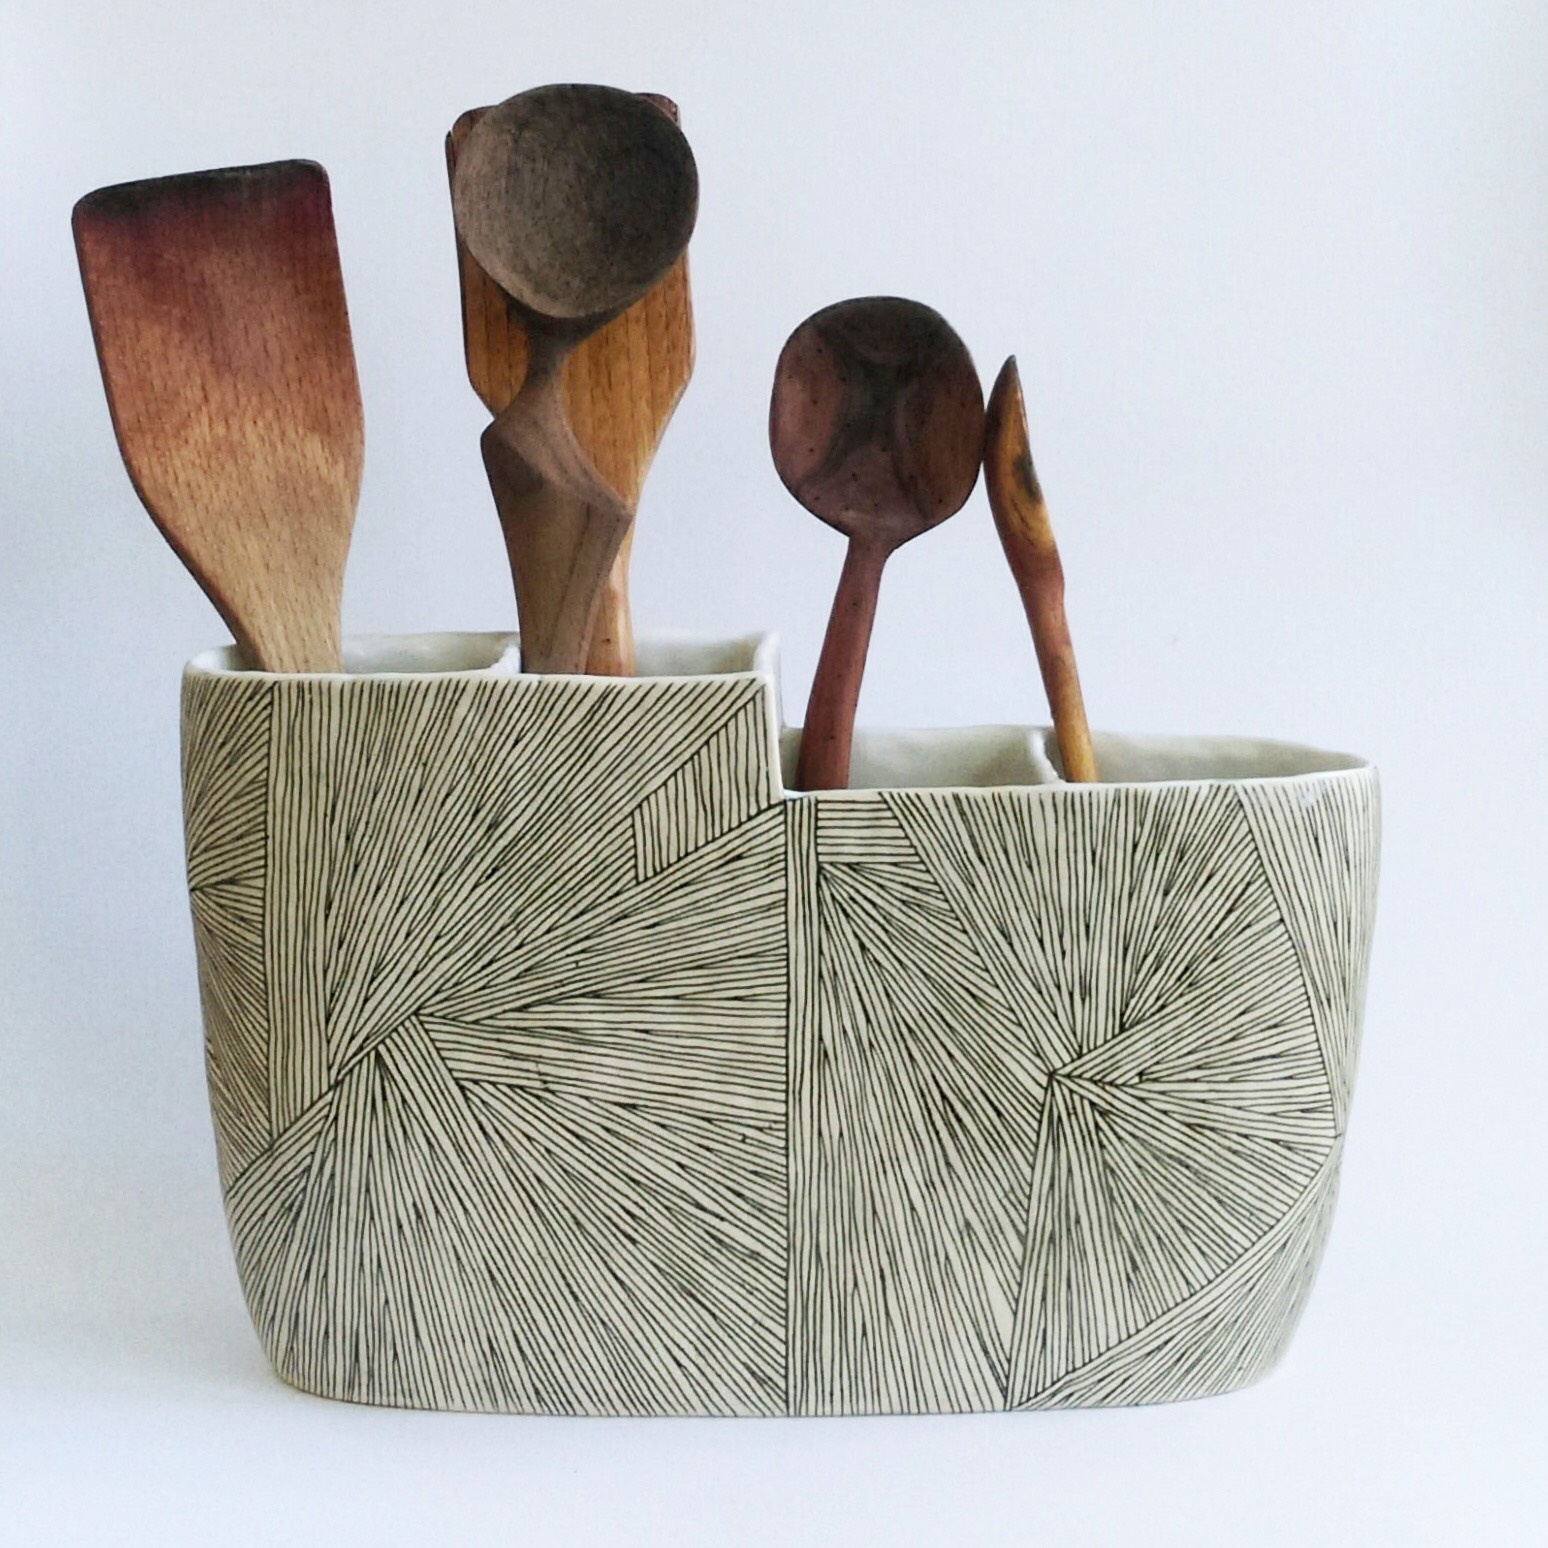 Functional Ceramic Art For Every Room Midwest Home